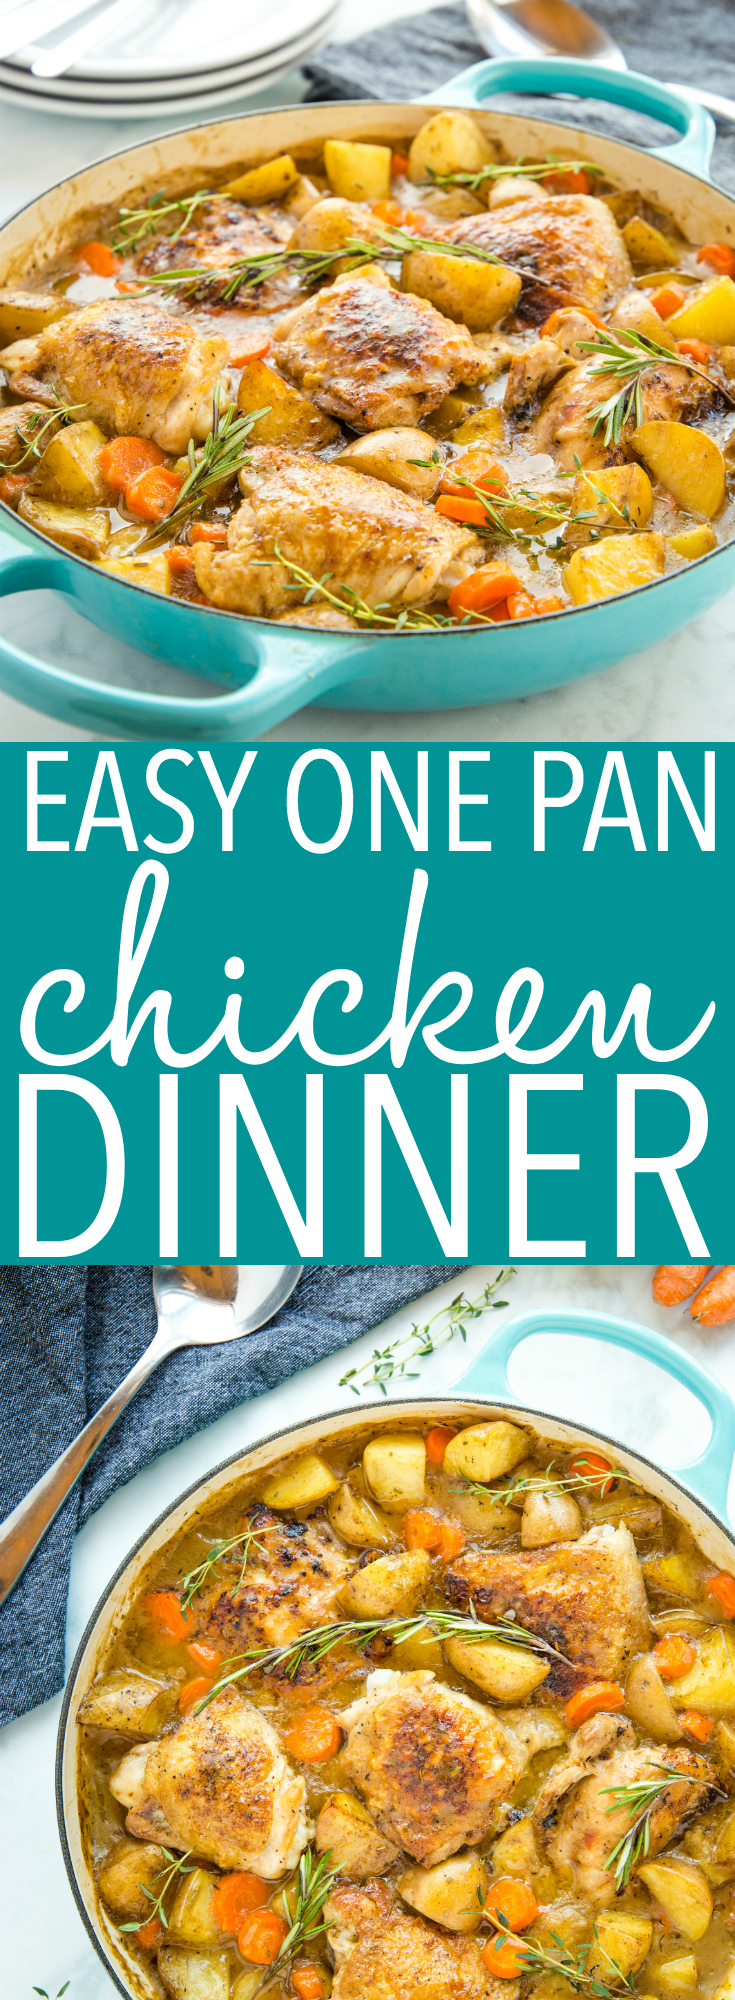 This Easy One Pot Roasted Chicken Dinner recipe is SO easy to make, and it's the perfect family meal with all the fixings and gravy, made in only one pan! Recipe from thebusybaker.ca #onepot #onepan #chicken #chickendinner #familymeal #sundaysupper #onepotmeal #weeknightmeal #easyrecipe #family #chickenandpotatoes #potatoes #vegetables #gravy #homemade via @busybakerblog